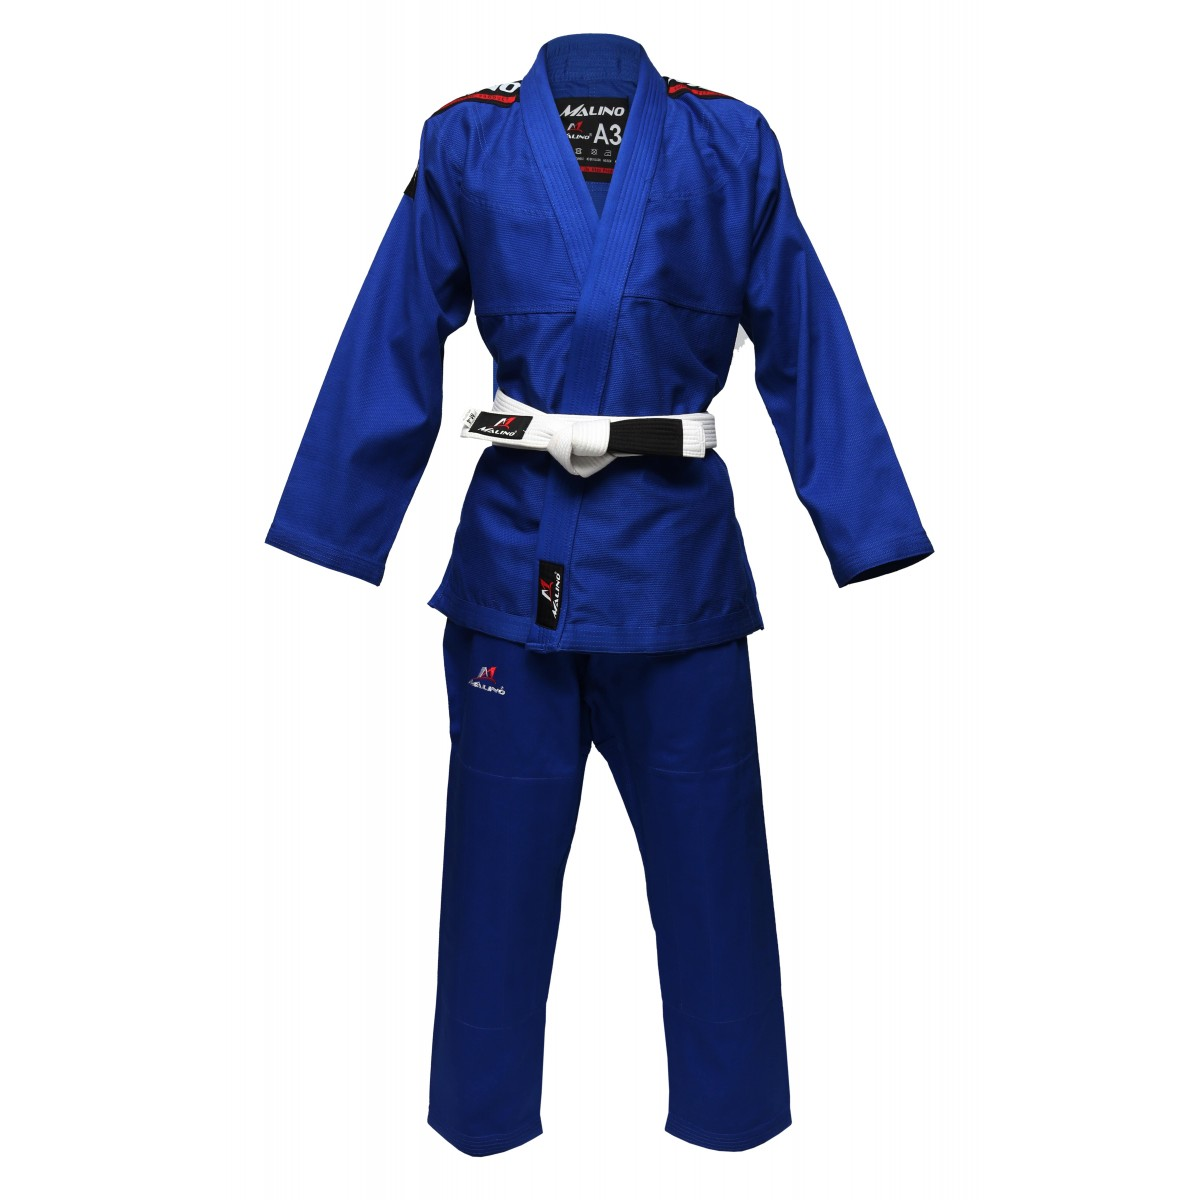 Malino Super Fit Bjj Gi Royal Blue Pearl Weave 350gsm